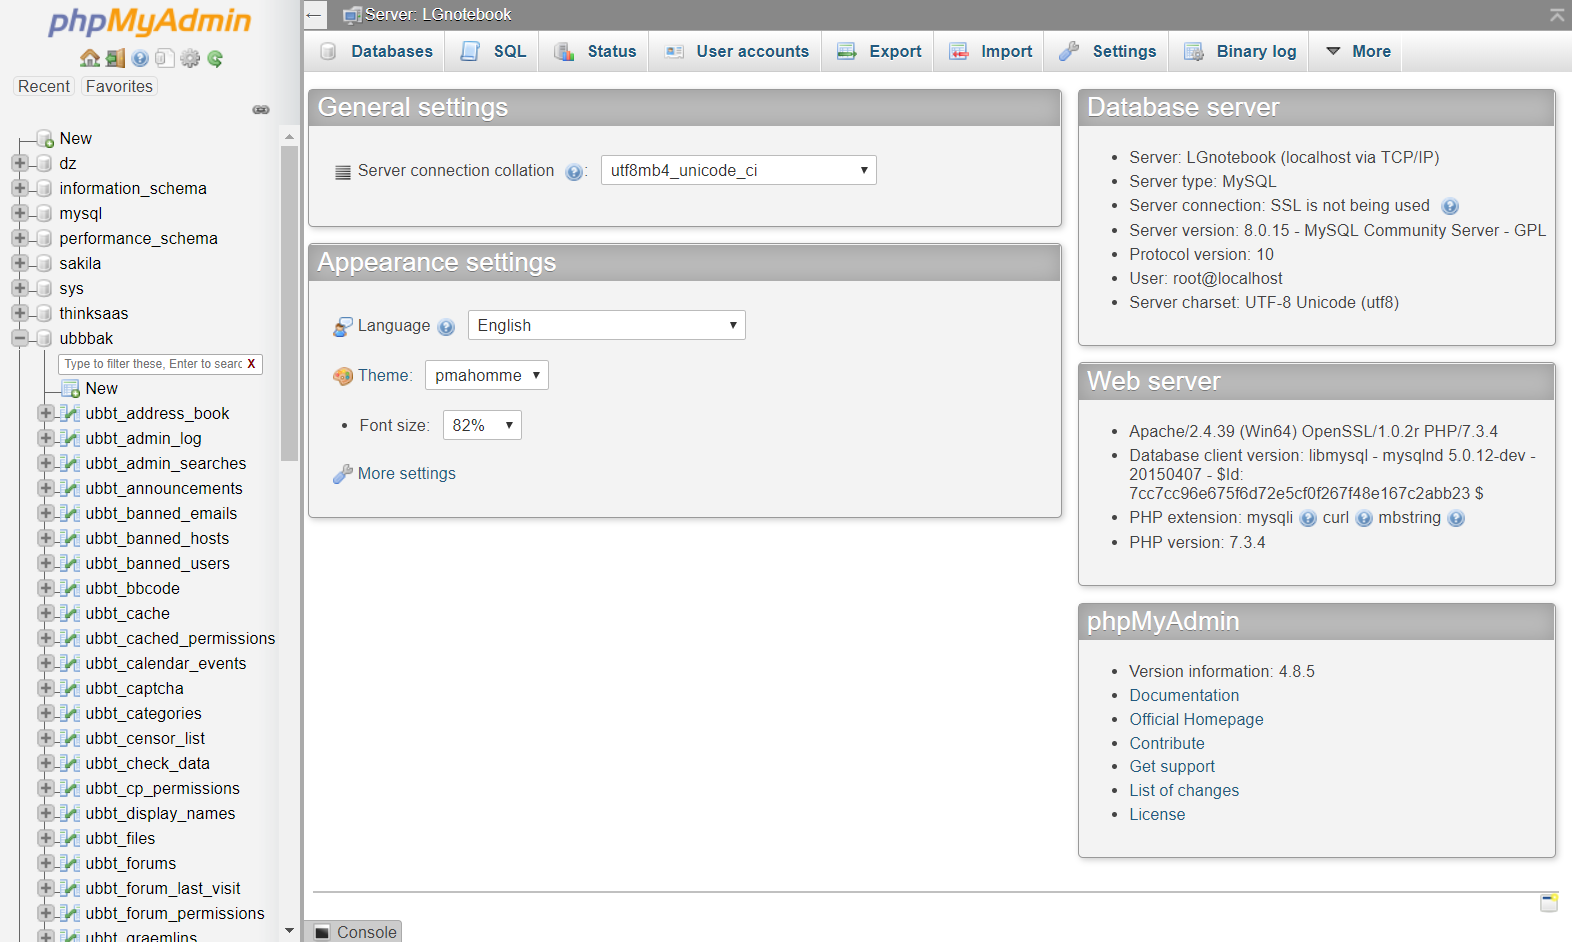 FireShot Pro Screen Capture #007 - 'localhost _ LGnotebook I phpMyAdmin 4_8_5' - localhost.png